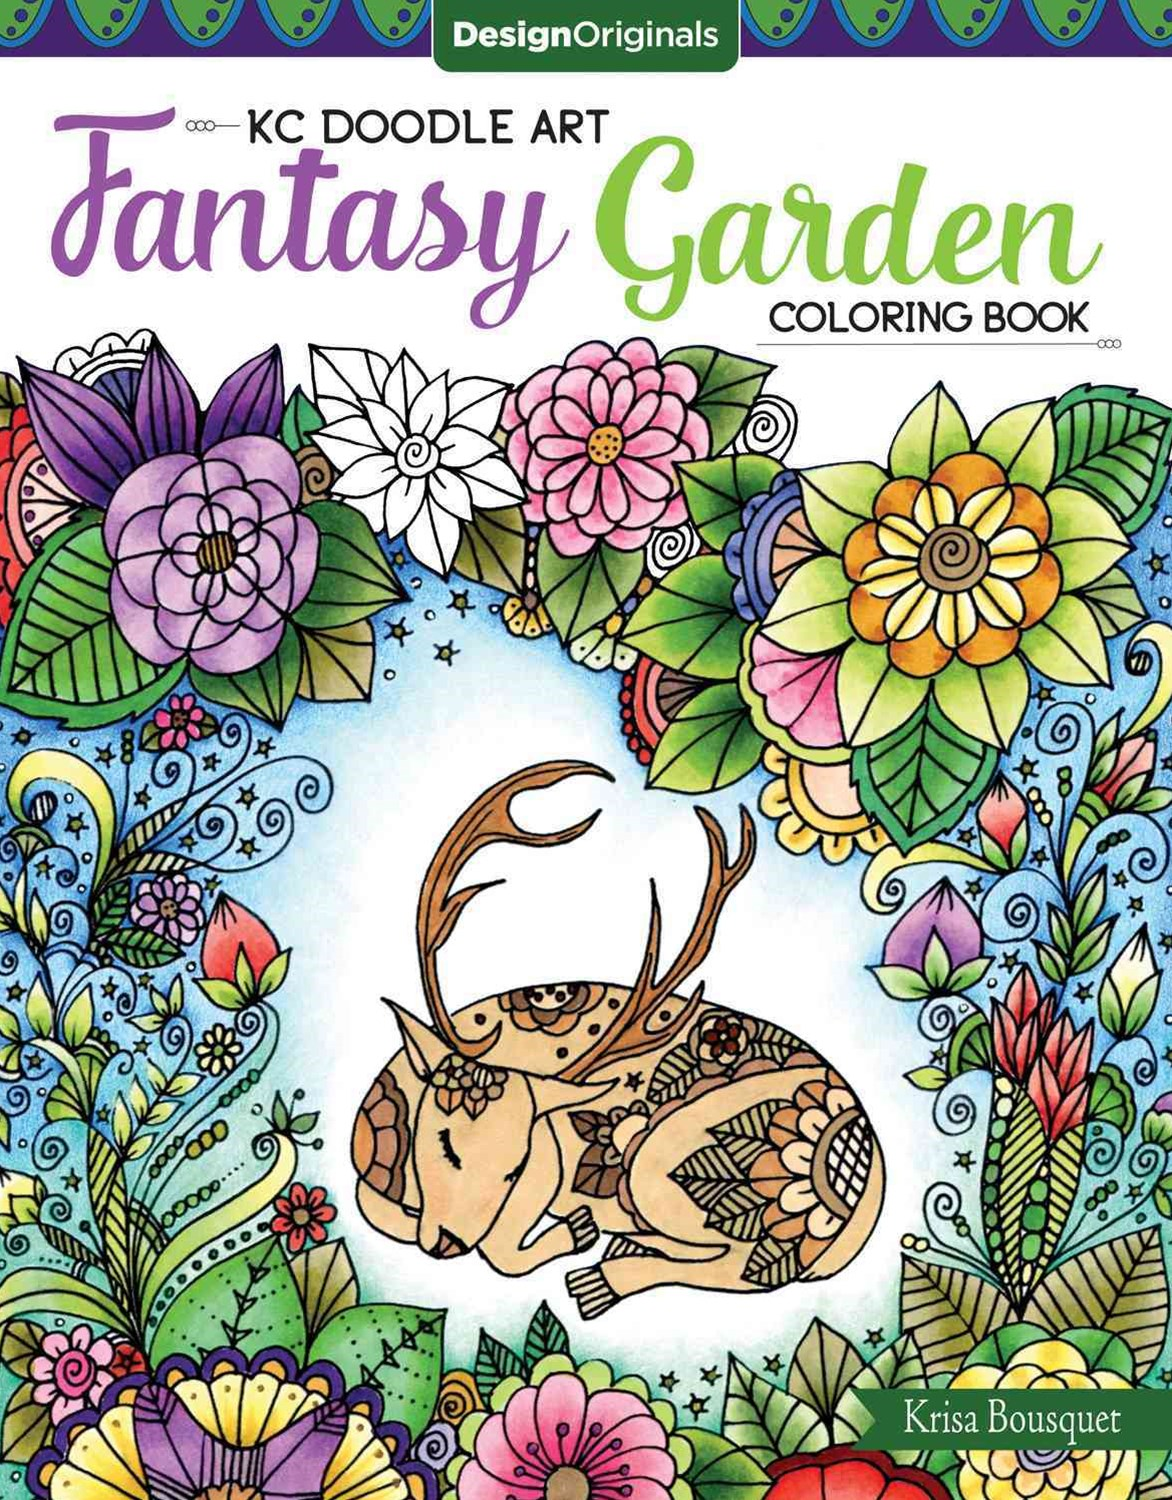 KC Doodle Art Fantasy Garden Coloring Book